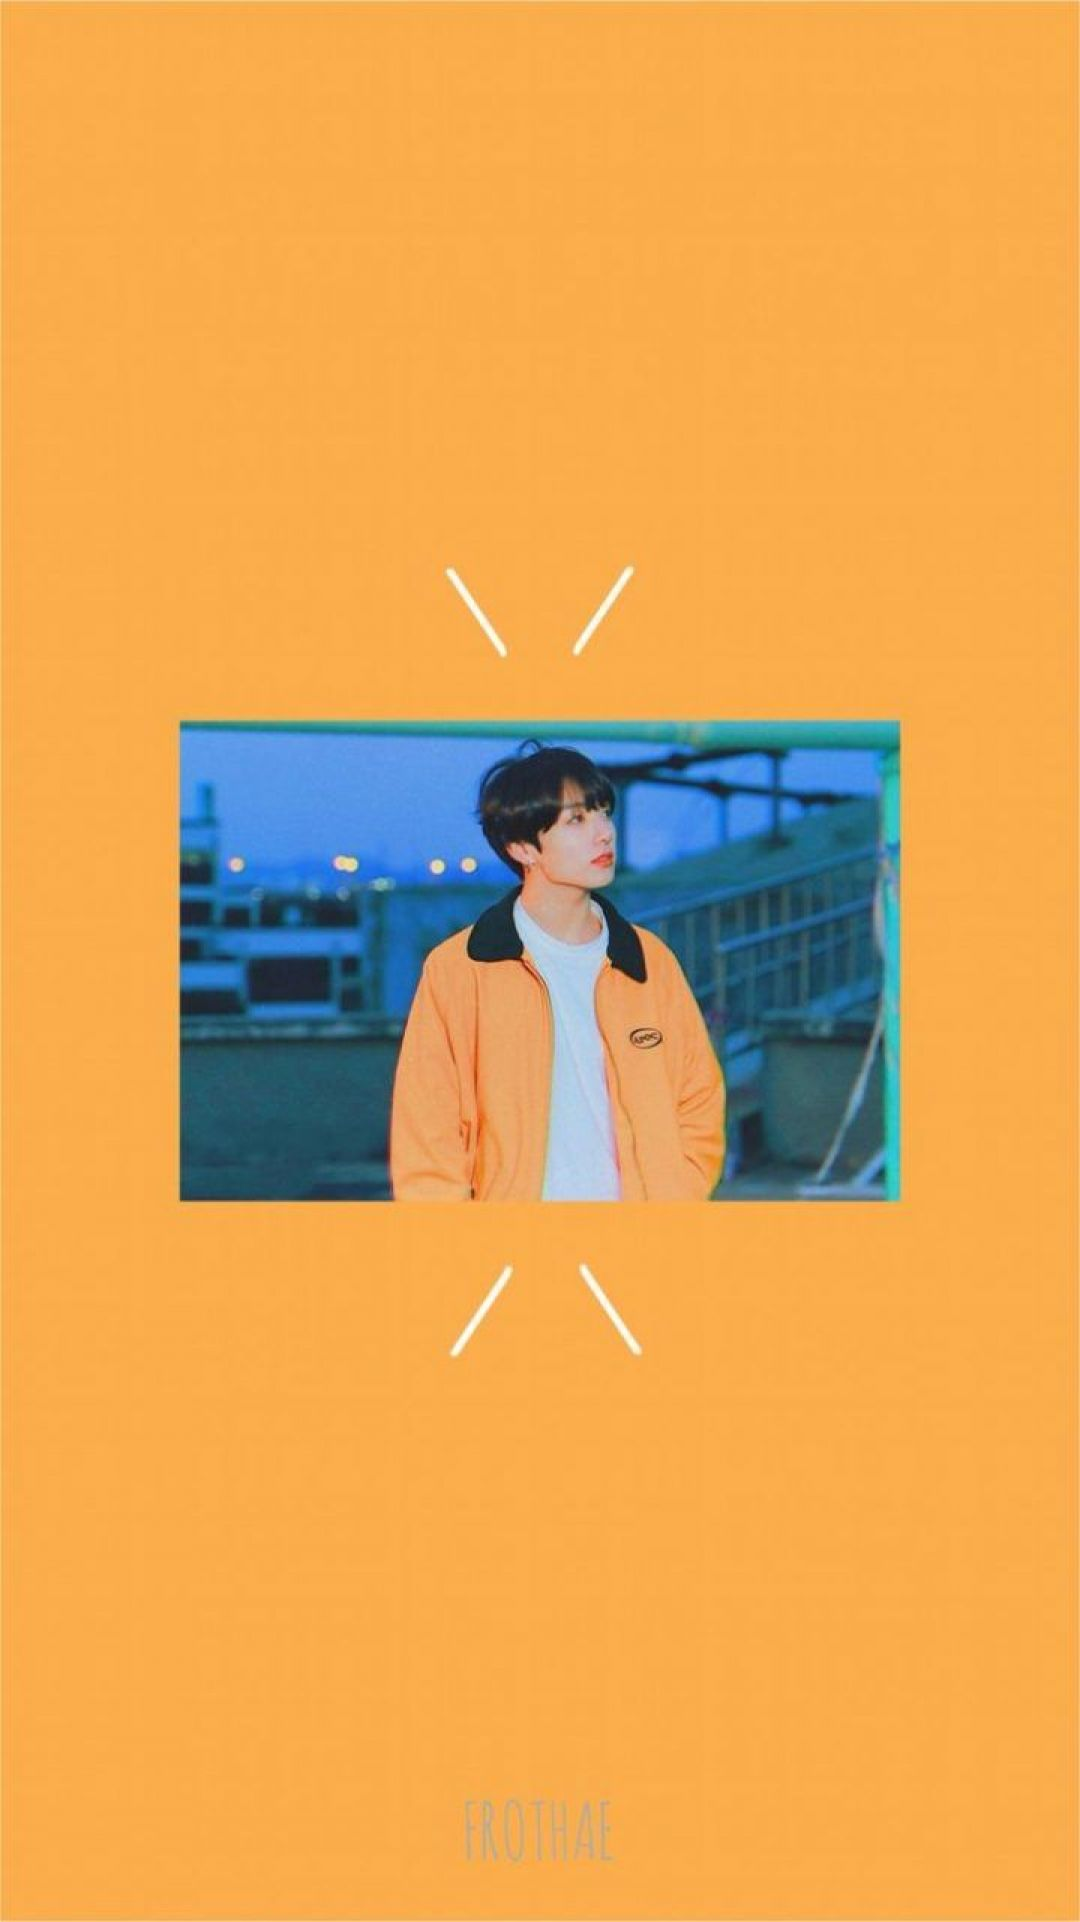 orange bts aestheticandroid iphone desktop hd backgrounds wallpapers 1080p 4k